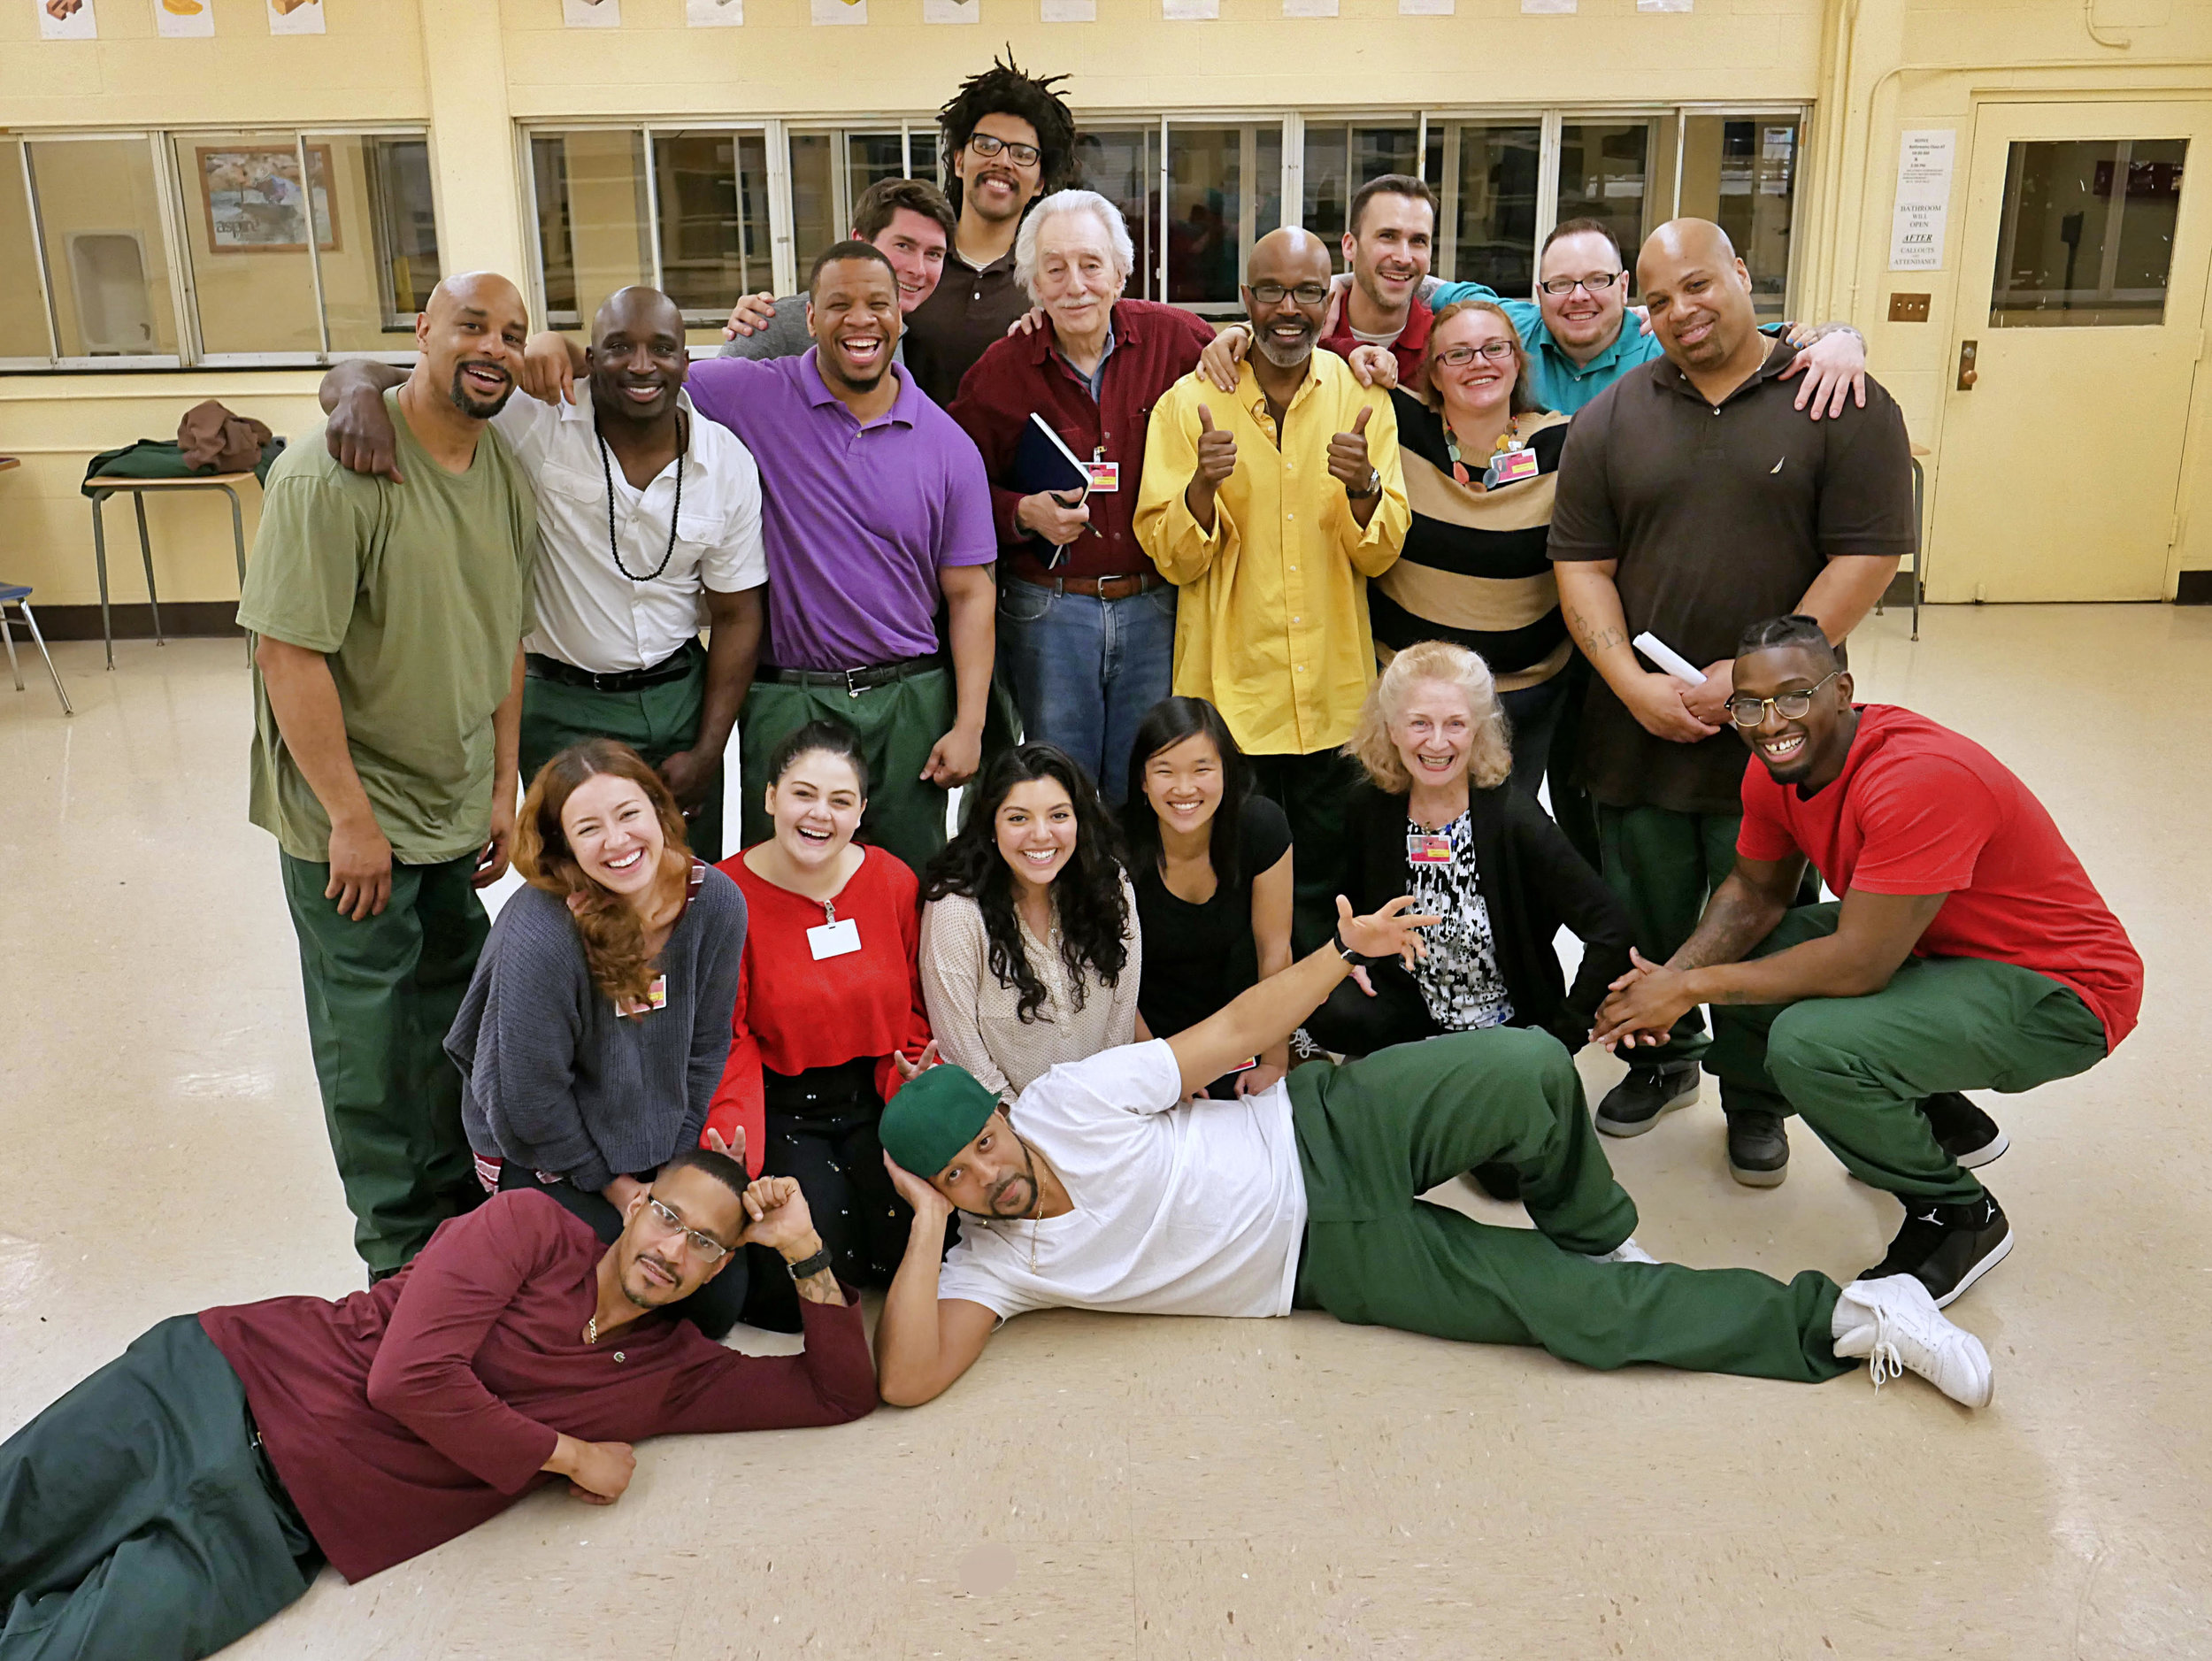 2019 Prison Theater Class. Top (left to right): Walker, Simeon, Ray, Alex, Kevin, Bruce, Mark, Adam, Jayme, Dan, Robert. Middle (left to right): Danielle, Ilana, Keyra, Mabel, Judy, Ariel. Bottom (left to right): Sheldon, Demetrius. (Photo Credit: Peter Carroll)